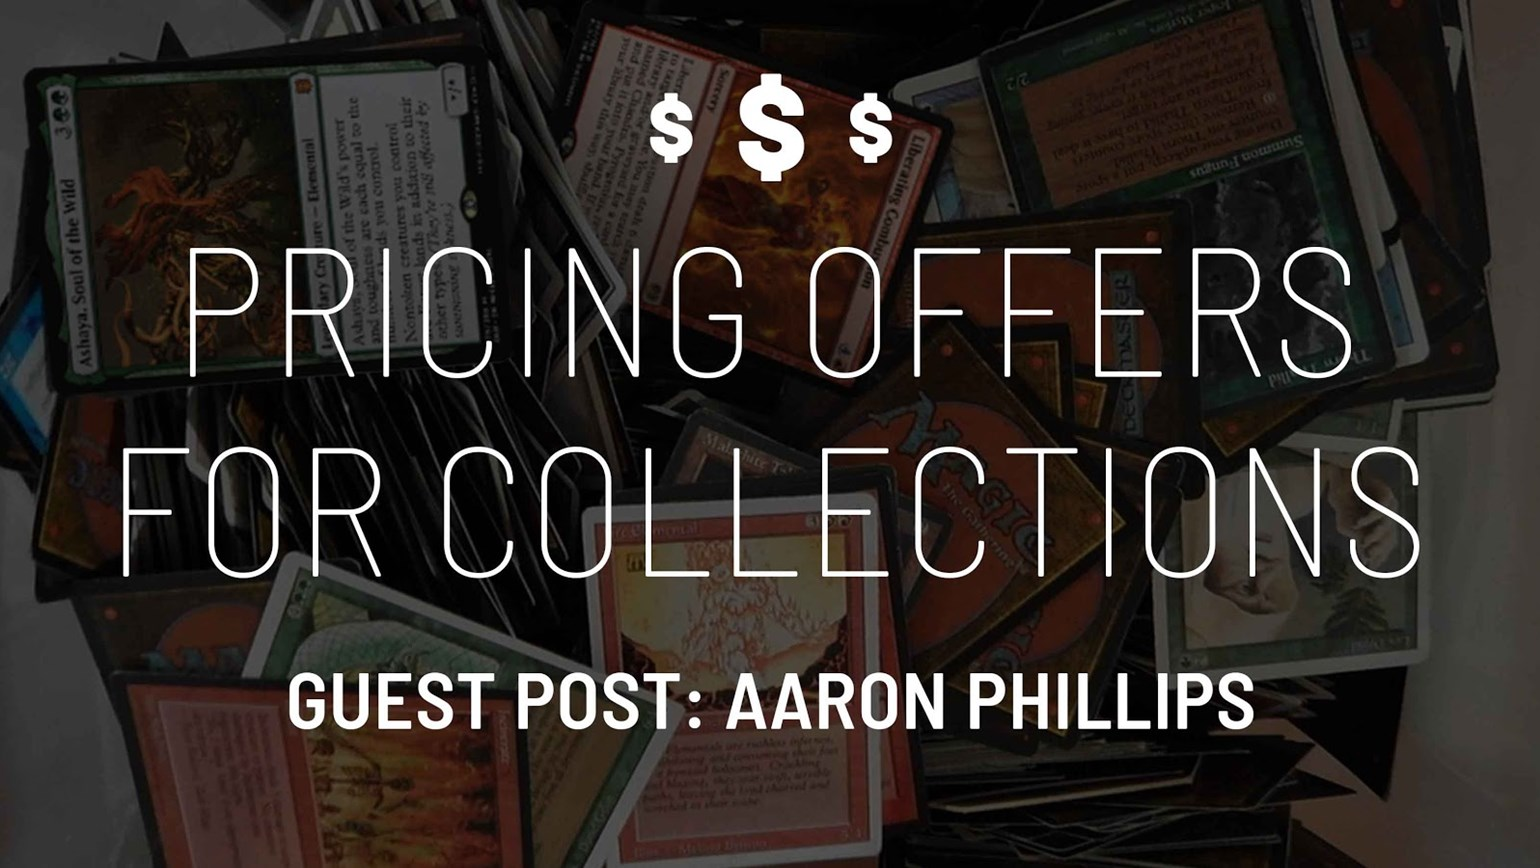 How to Price Offers for Collections